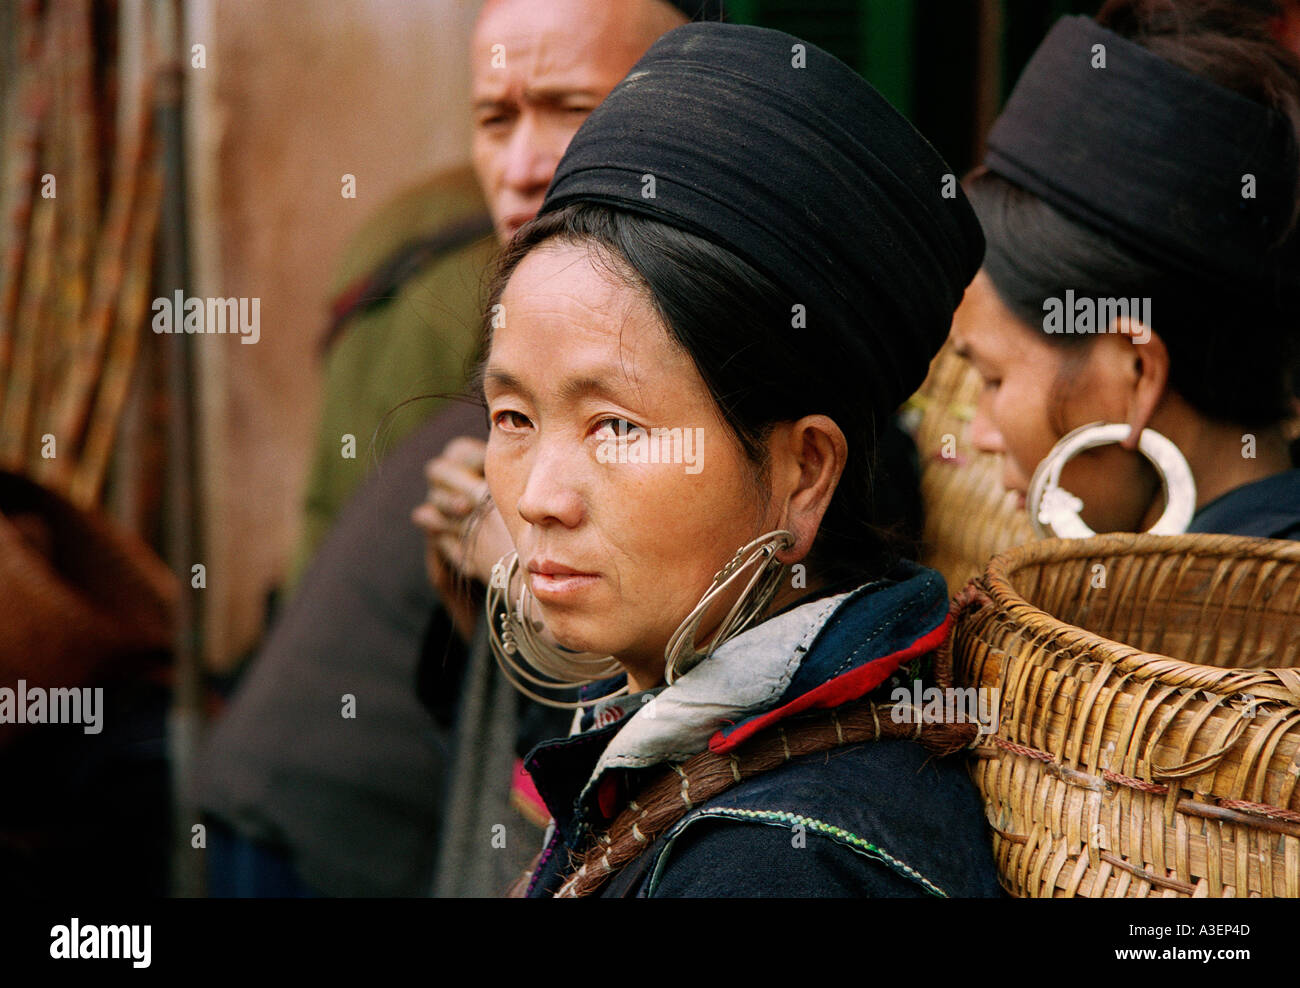 Portrait of a woman of the Hmong Tribe in traditional dress at the market in SaPa Northern Vietnam - Stock Image